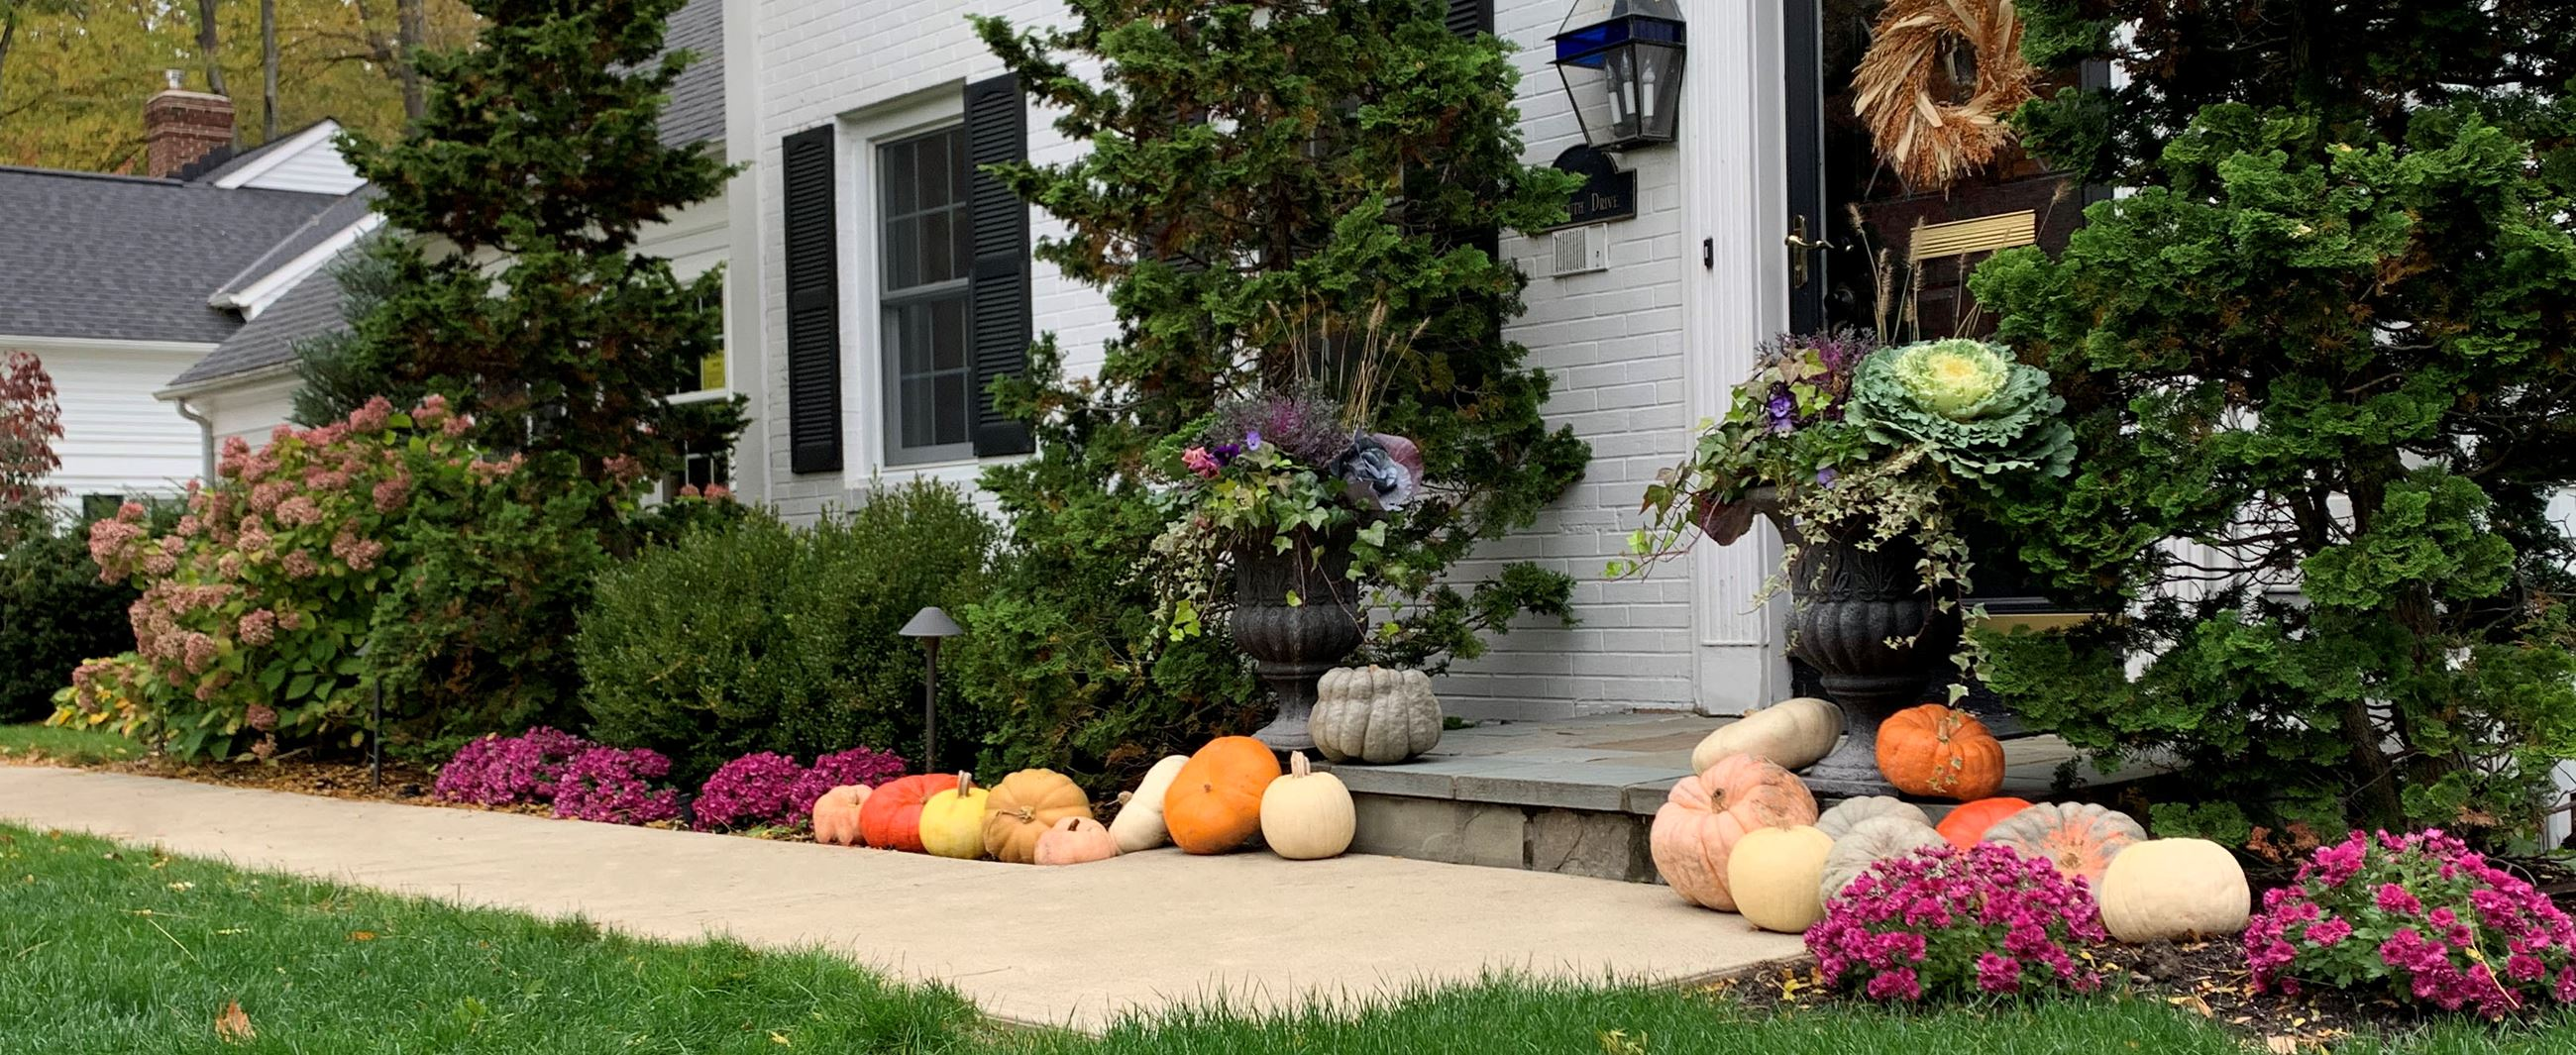 Photo of fall pumpkins in front of a home